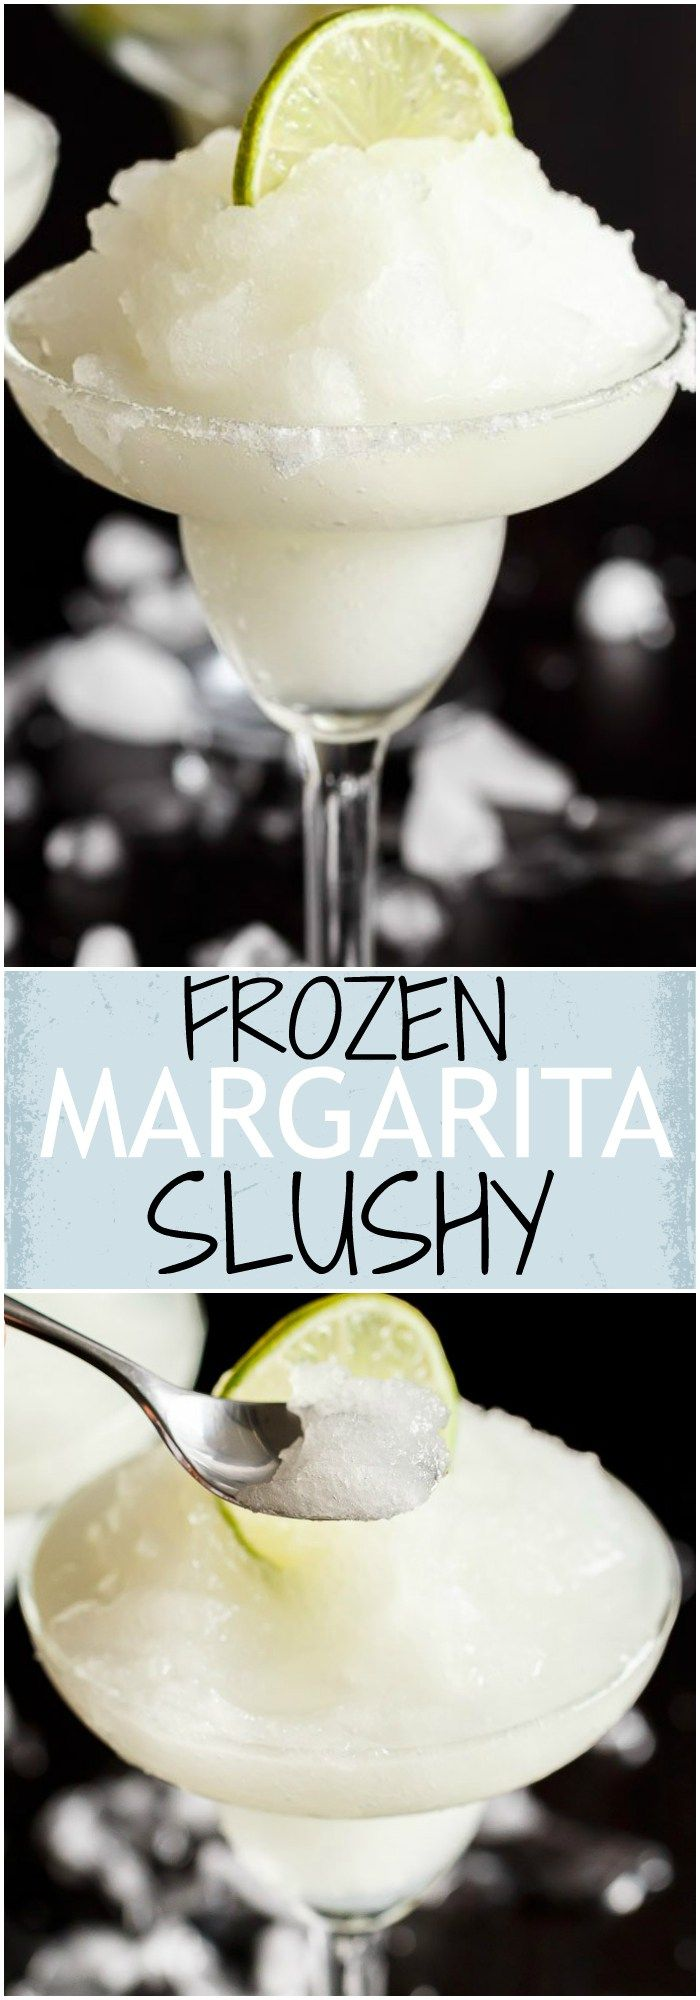 Frozen Margarita Slushy blends the original Margarita made with Tequila and fresh lime juice with ice cubes to make a refreshing icy drink! | http://cafedelites.com